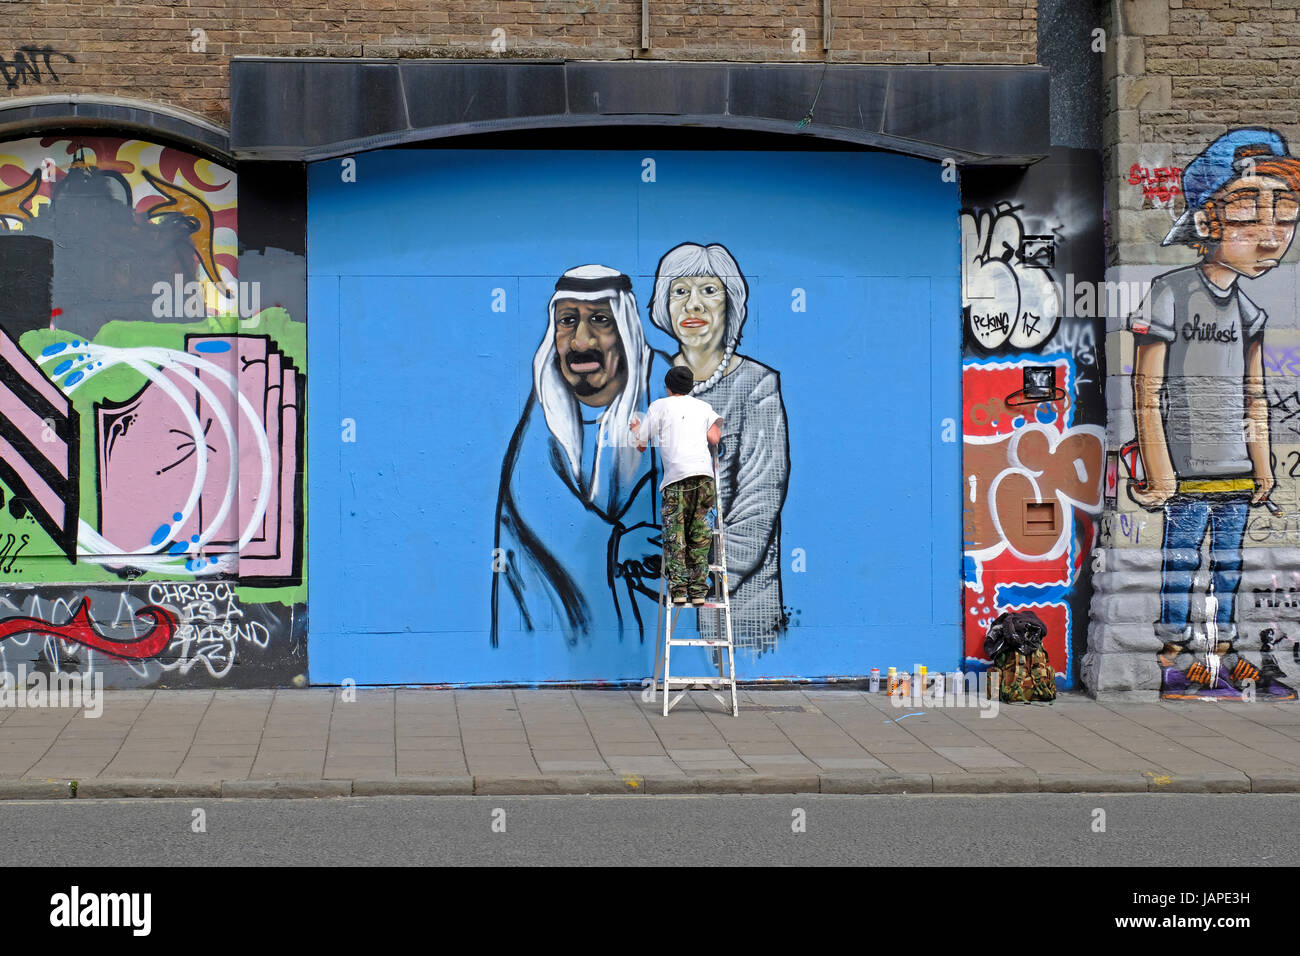 Bristol, UK. 7th June, 2017. A new piece of street art takes shape in Stokes Croft. Stokes Croft is an area of the - Stock Image